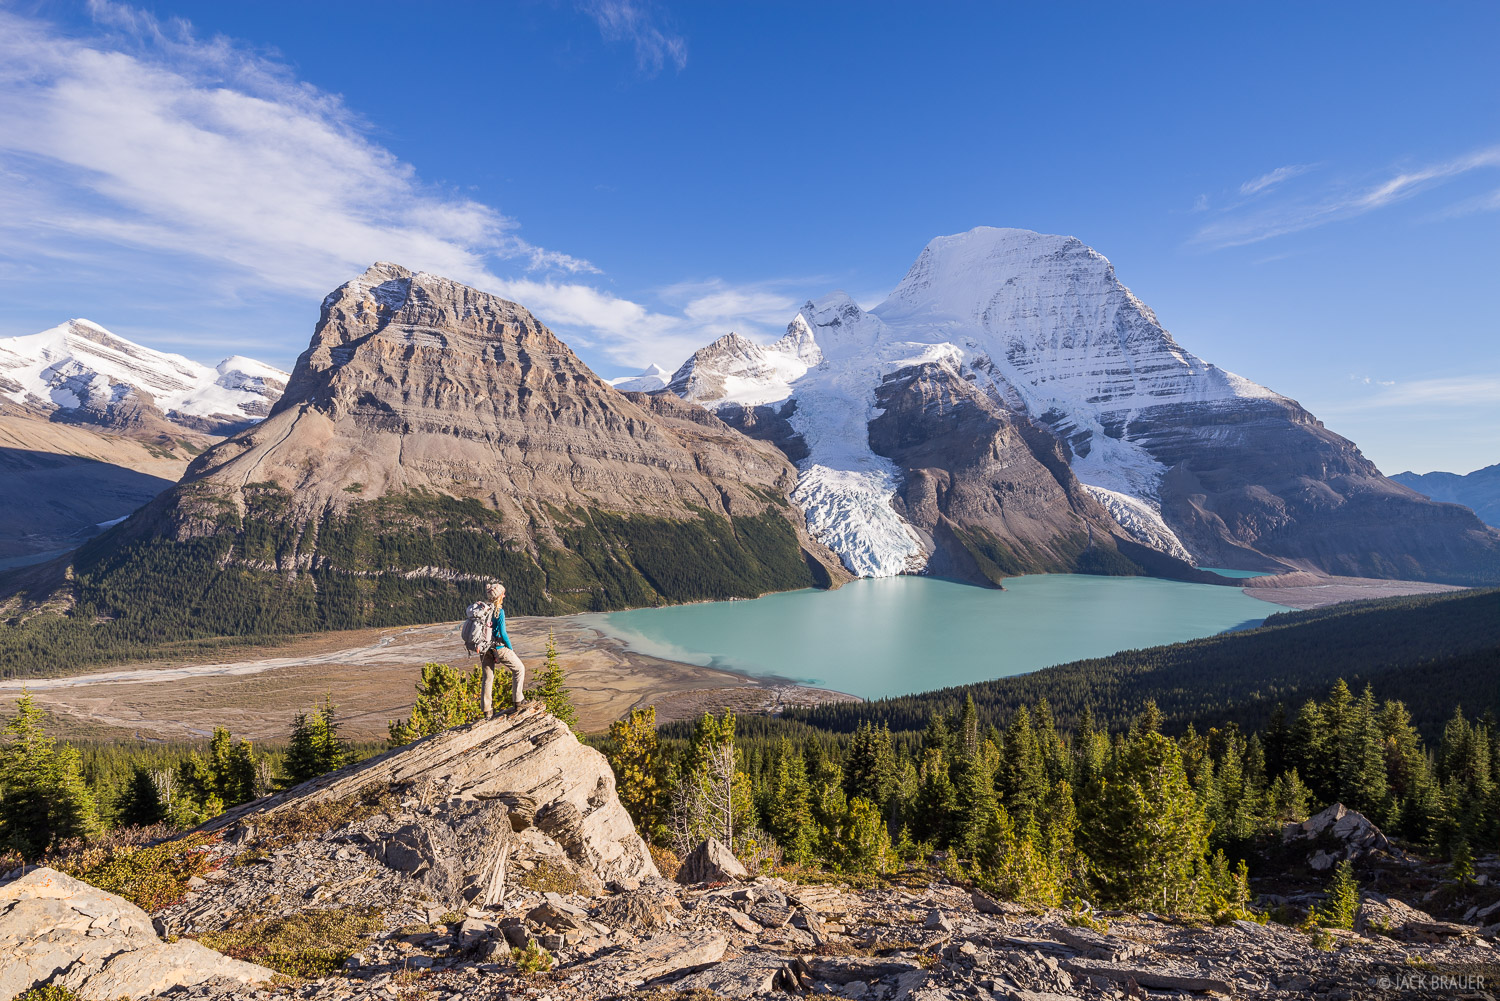 Mount Robson (3954 m / 12972 ft.) rises an astounding 7,500 vertical feet above Berg Lake! The sheer scale is difficult to comprehend...